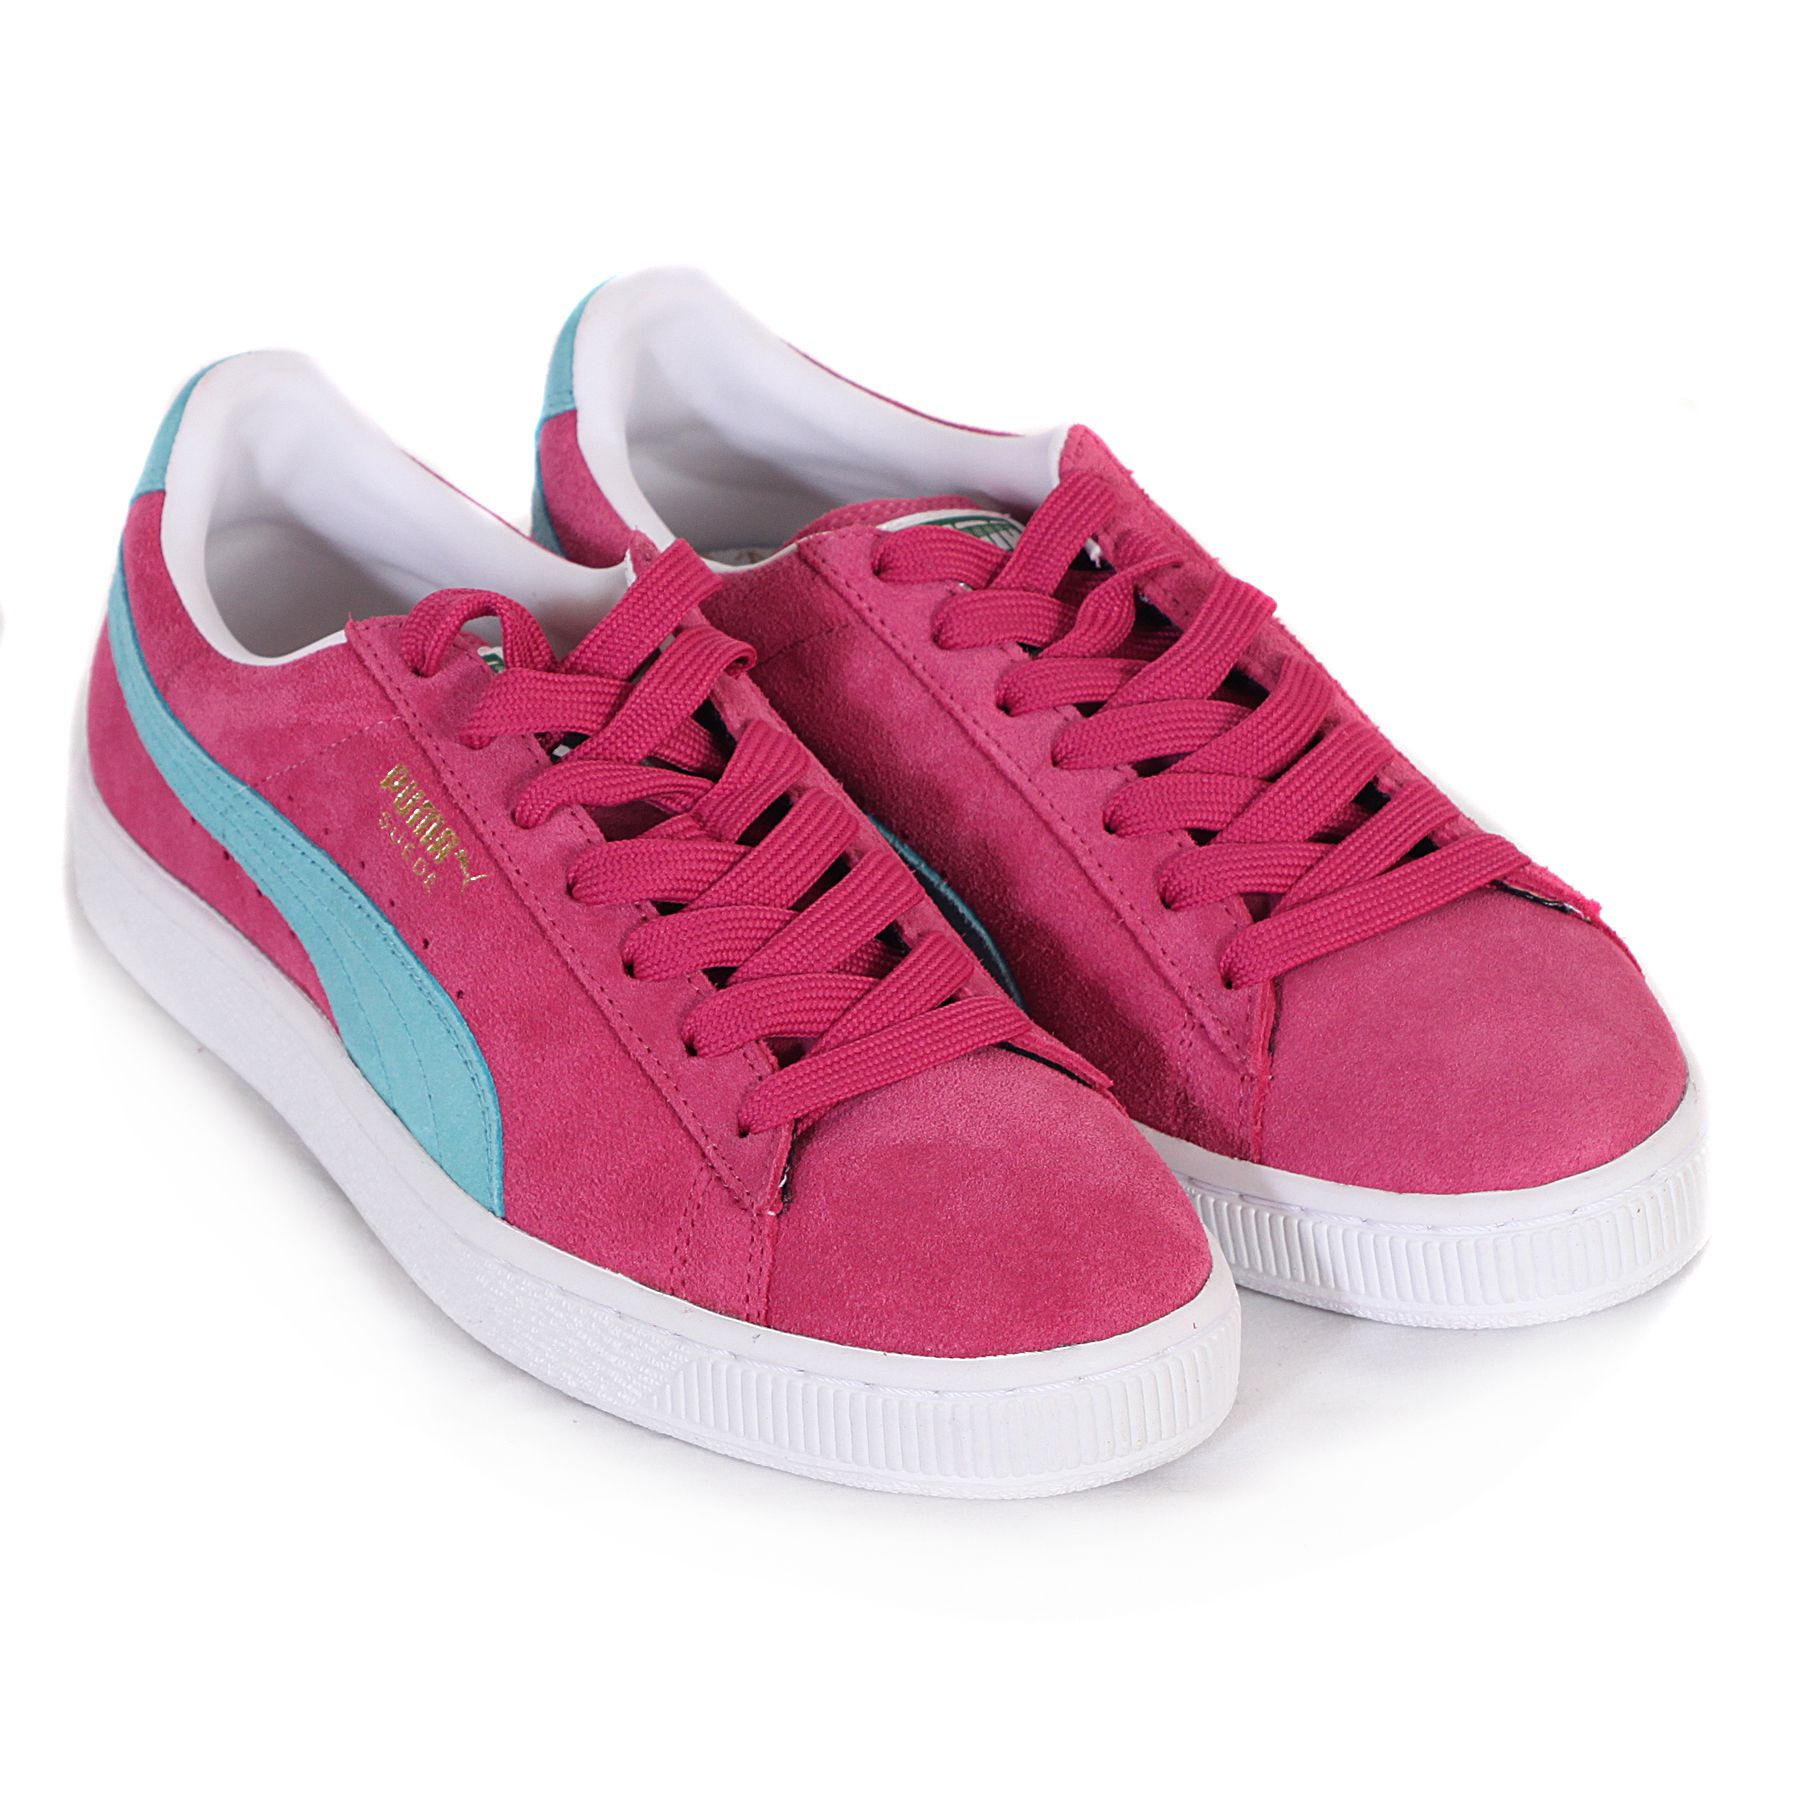 puma suede classics pink blue women 39 s ss 39 13 shoes. Black Bedroom Furniture Sets. Home Design Ideas